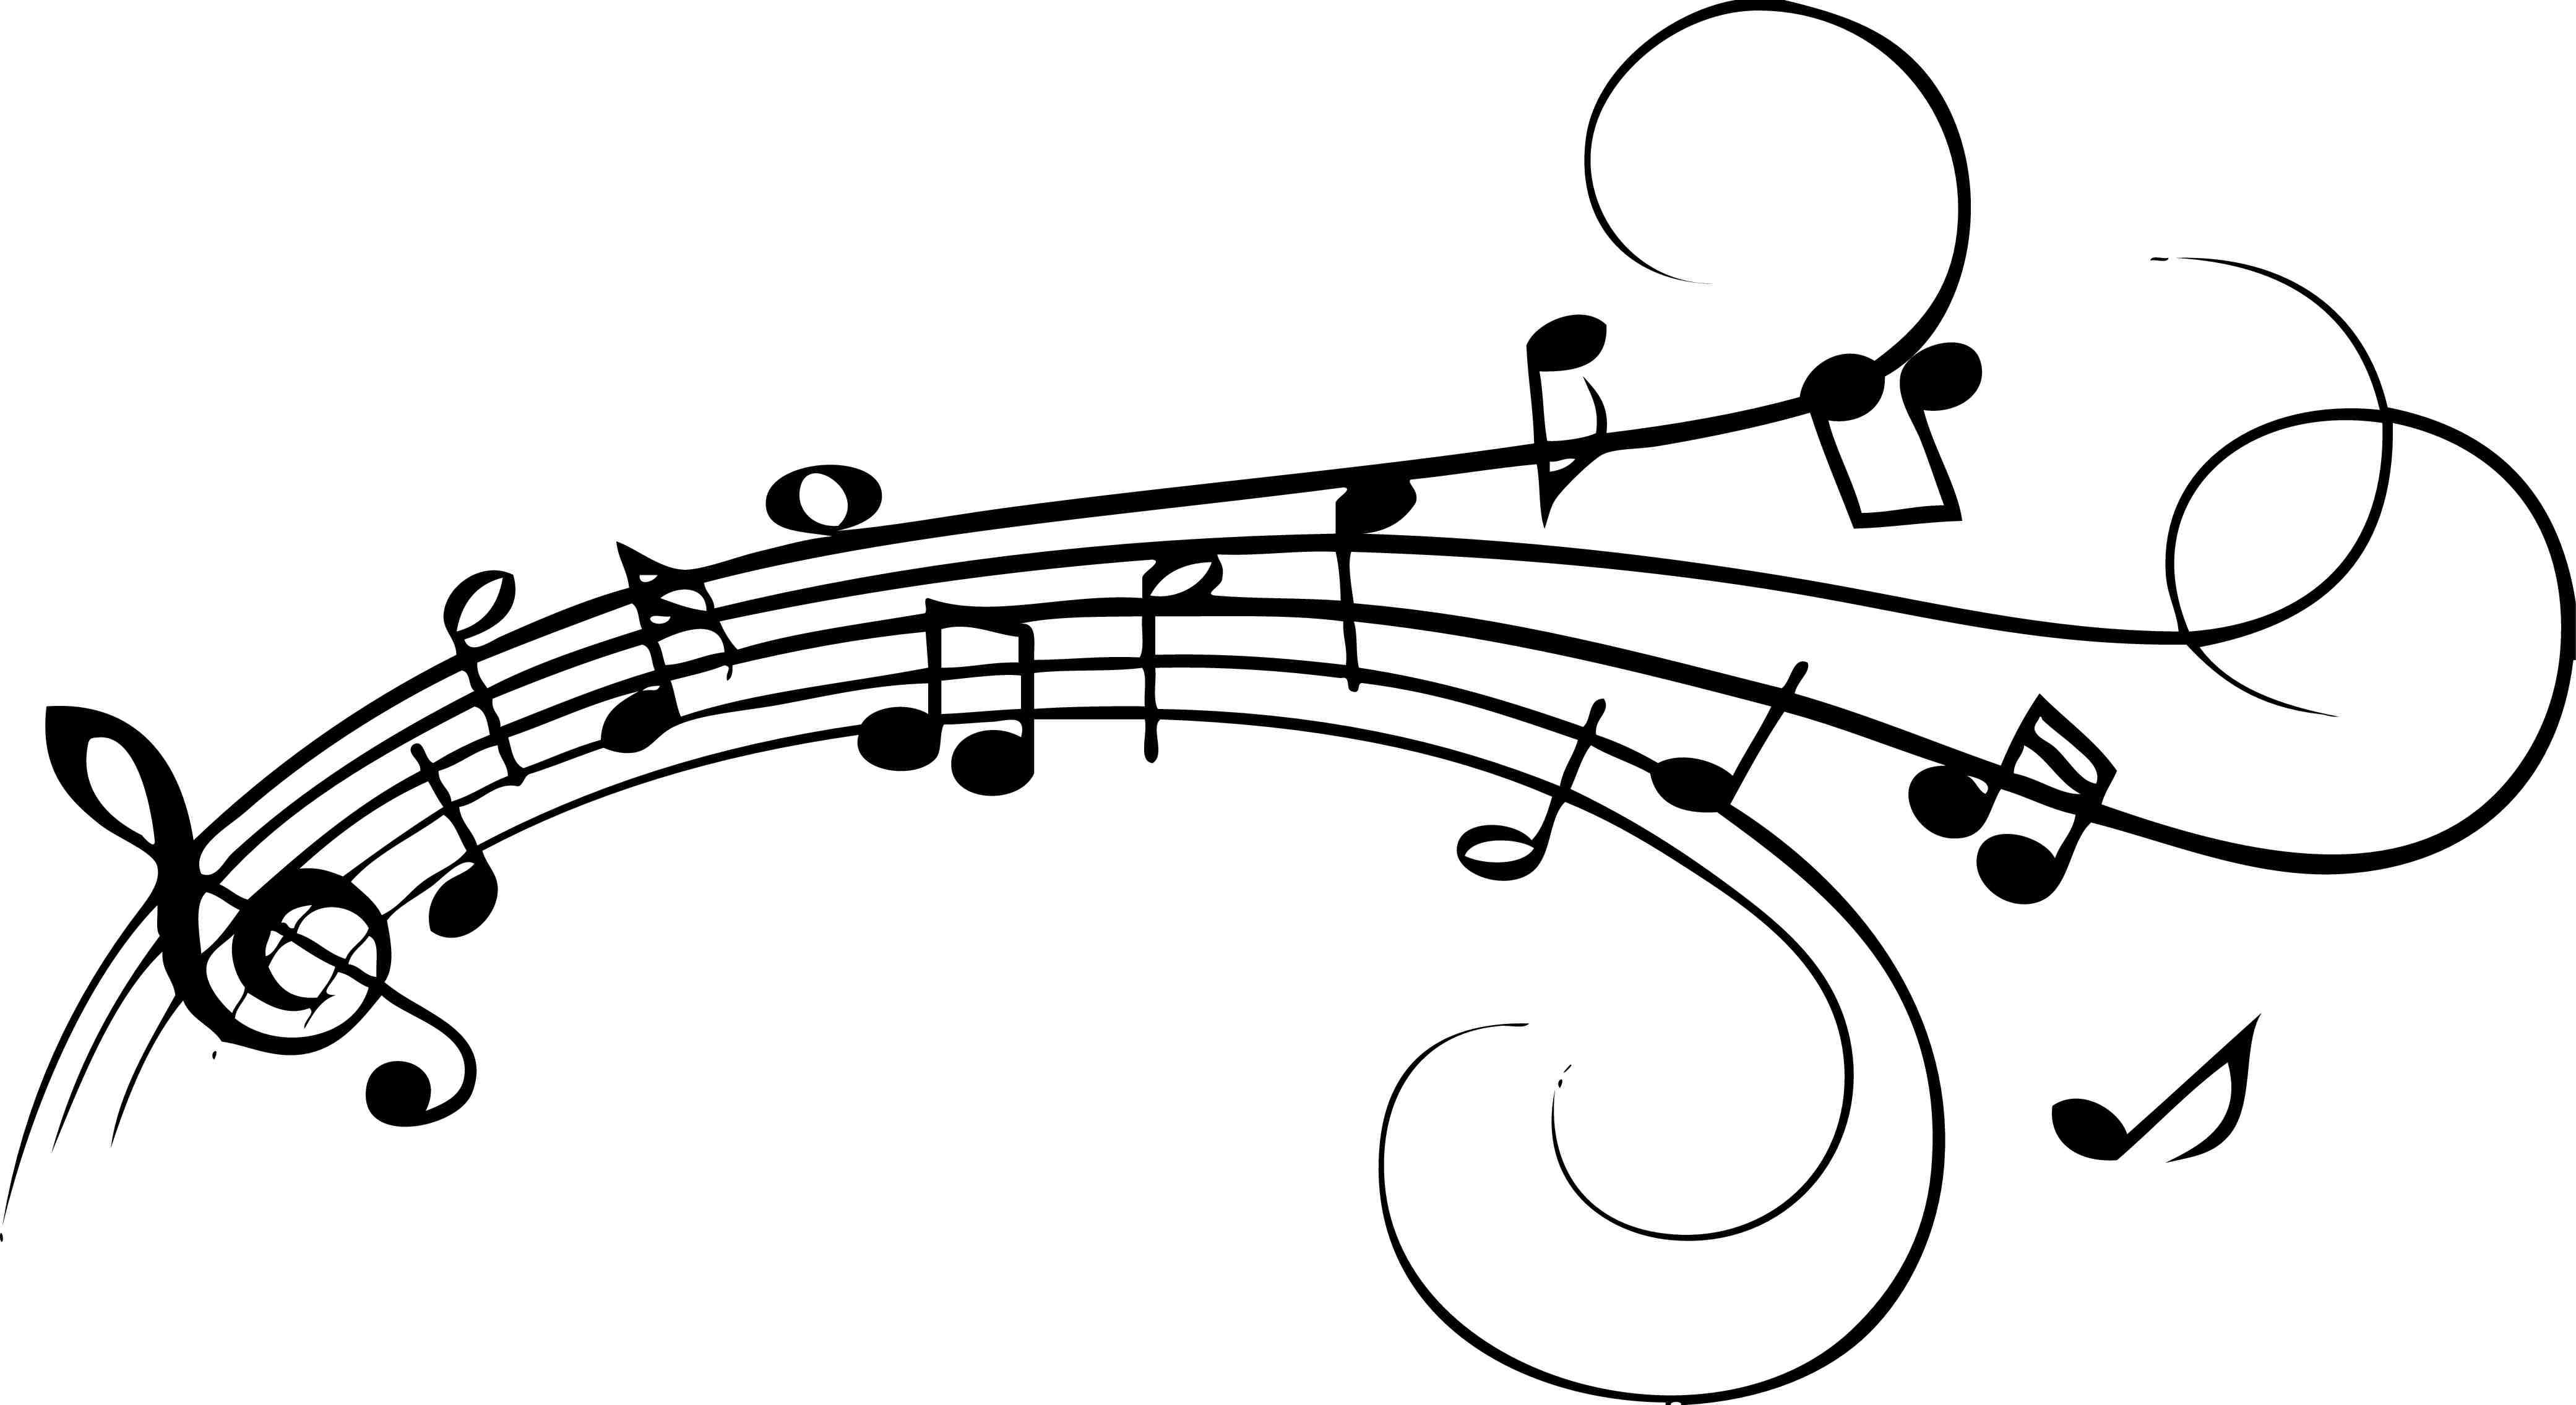 music-notes-drawing-1